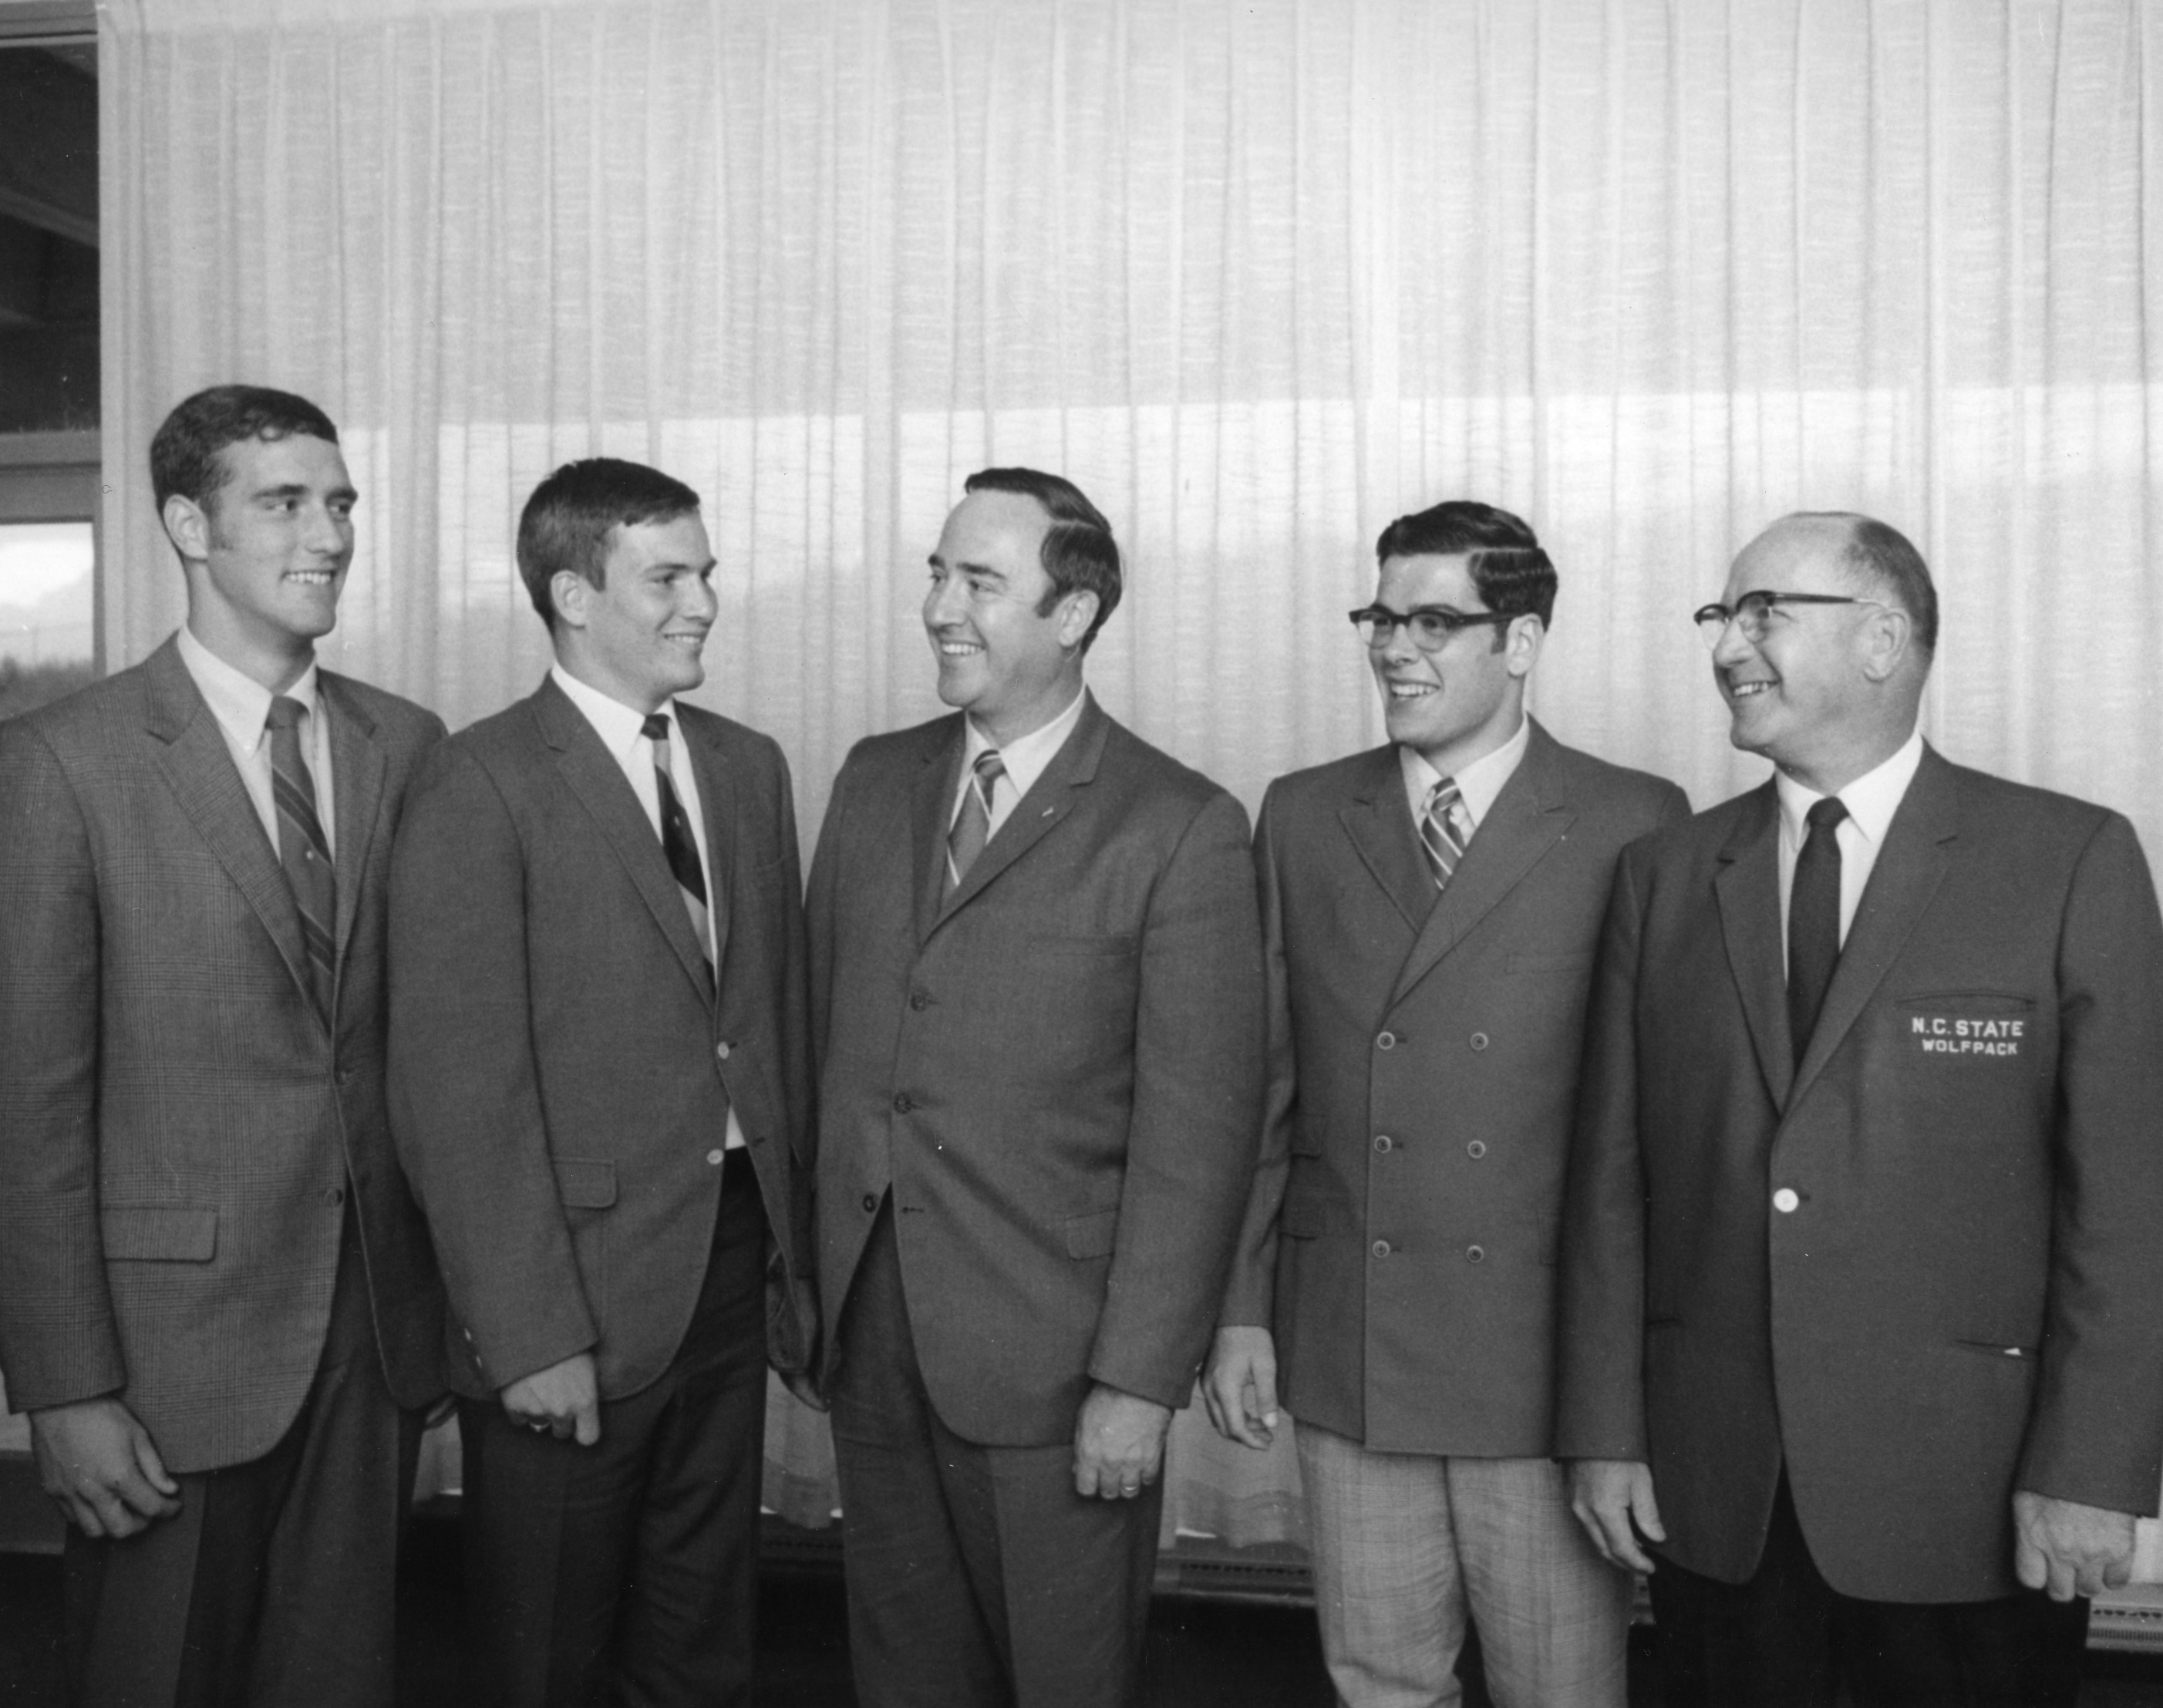 N. C. State football players with Governor Robert Walker, Craig John, and Coach Earle Edwards